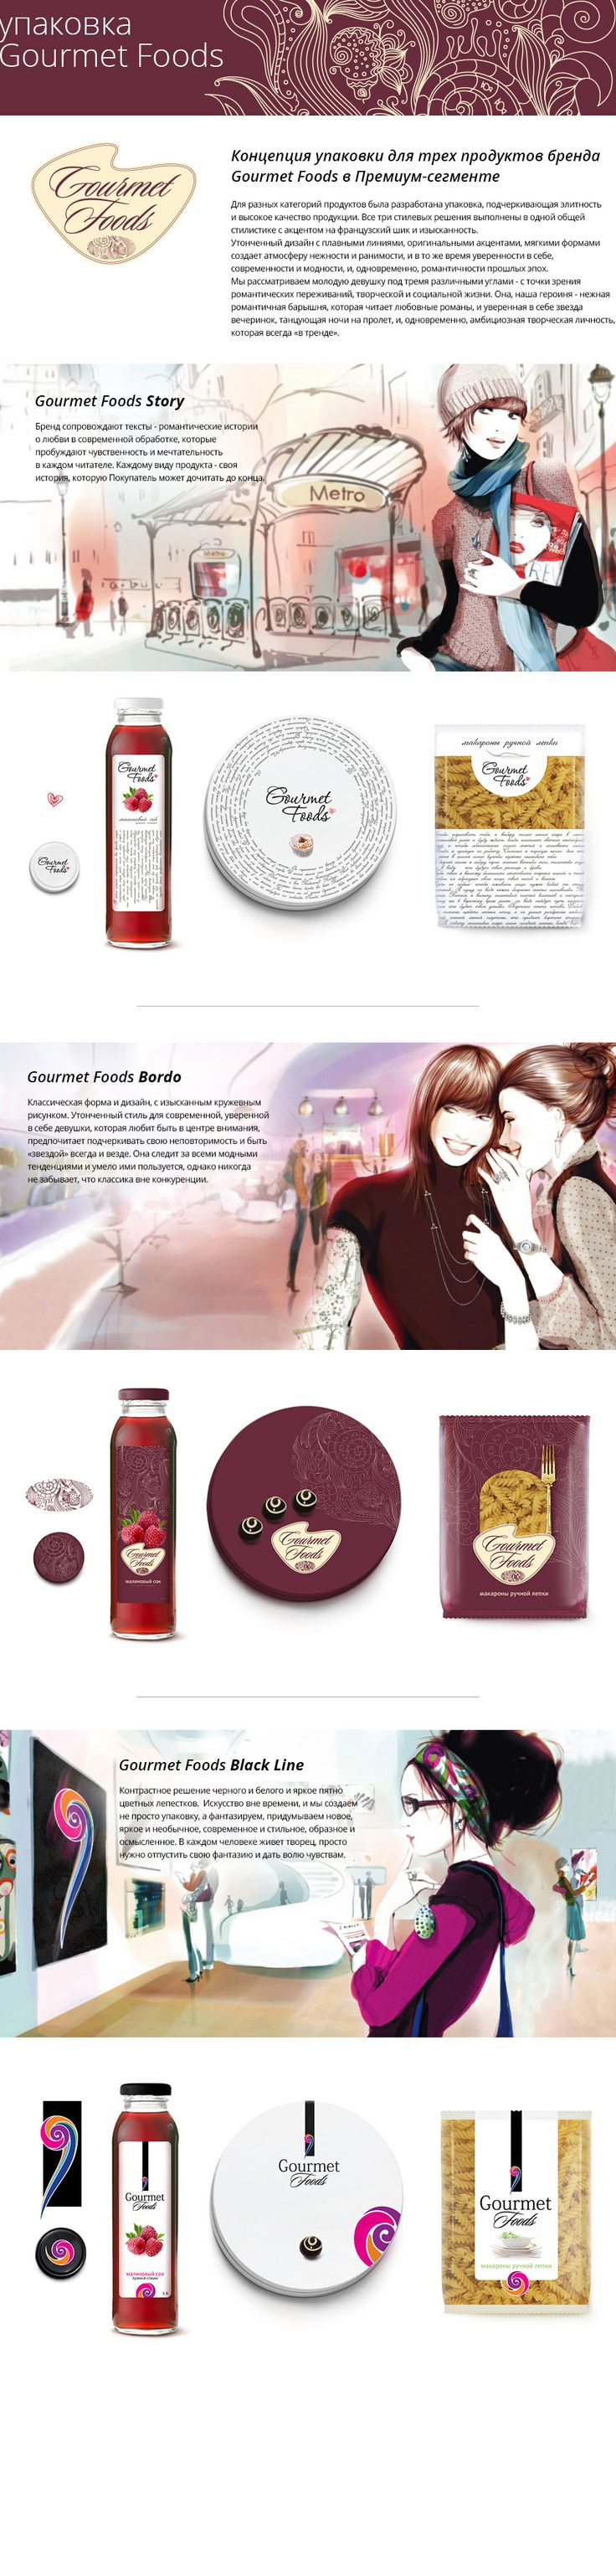 "Creative concept ""life style"" WORK: platform brand / logo design / packaging design INDUSTRY: Food"